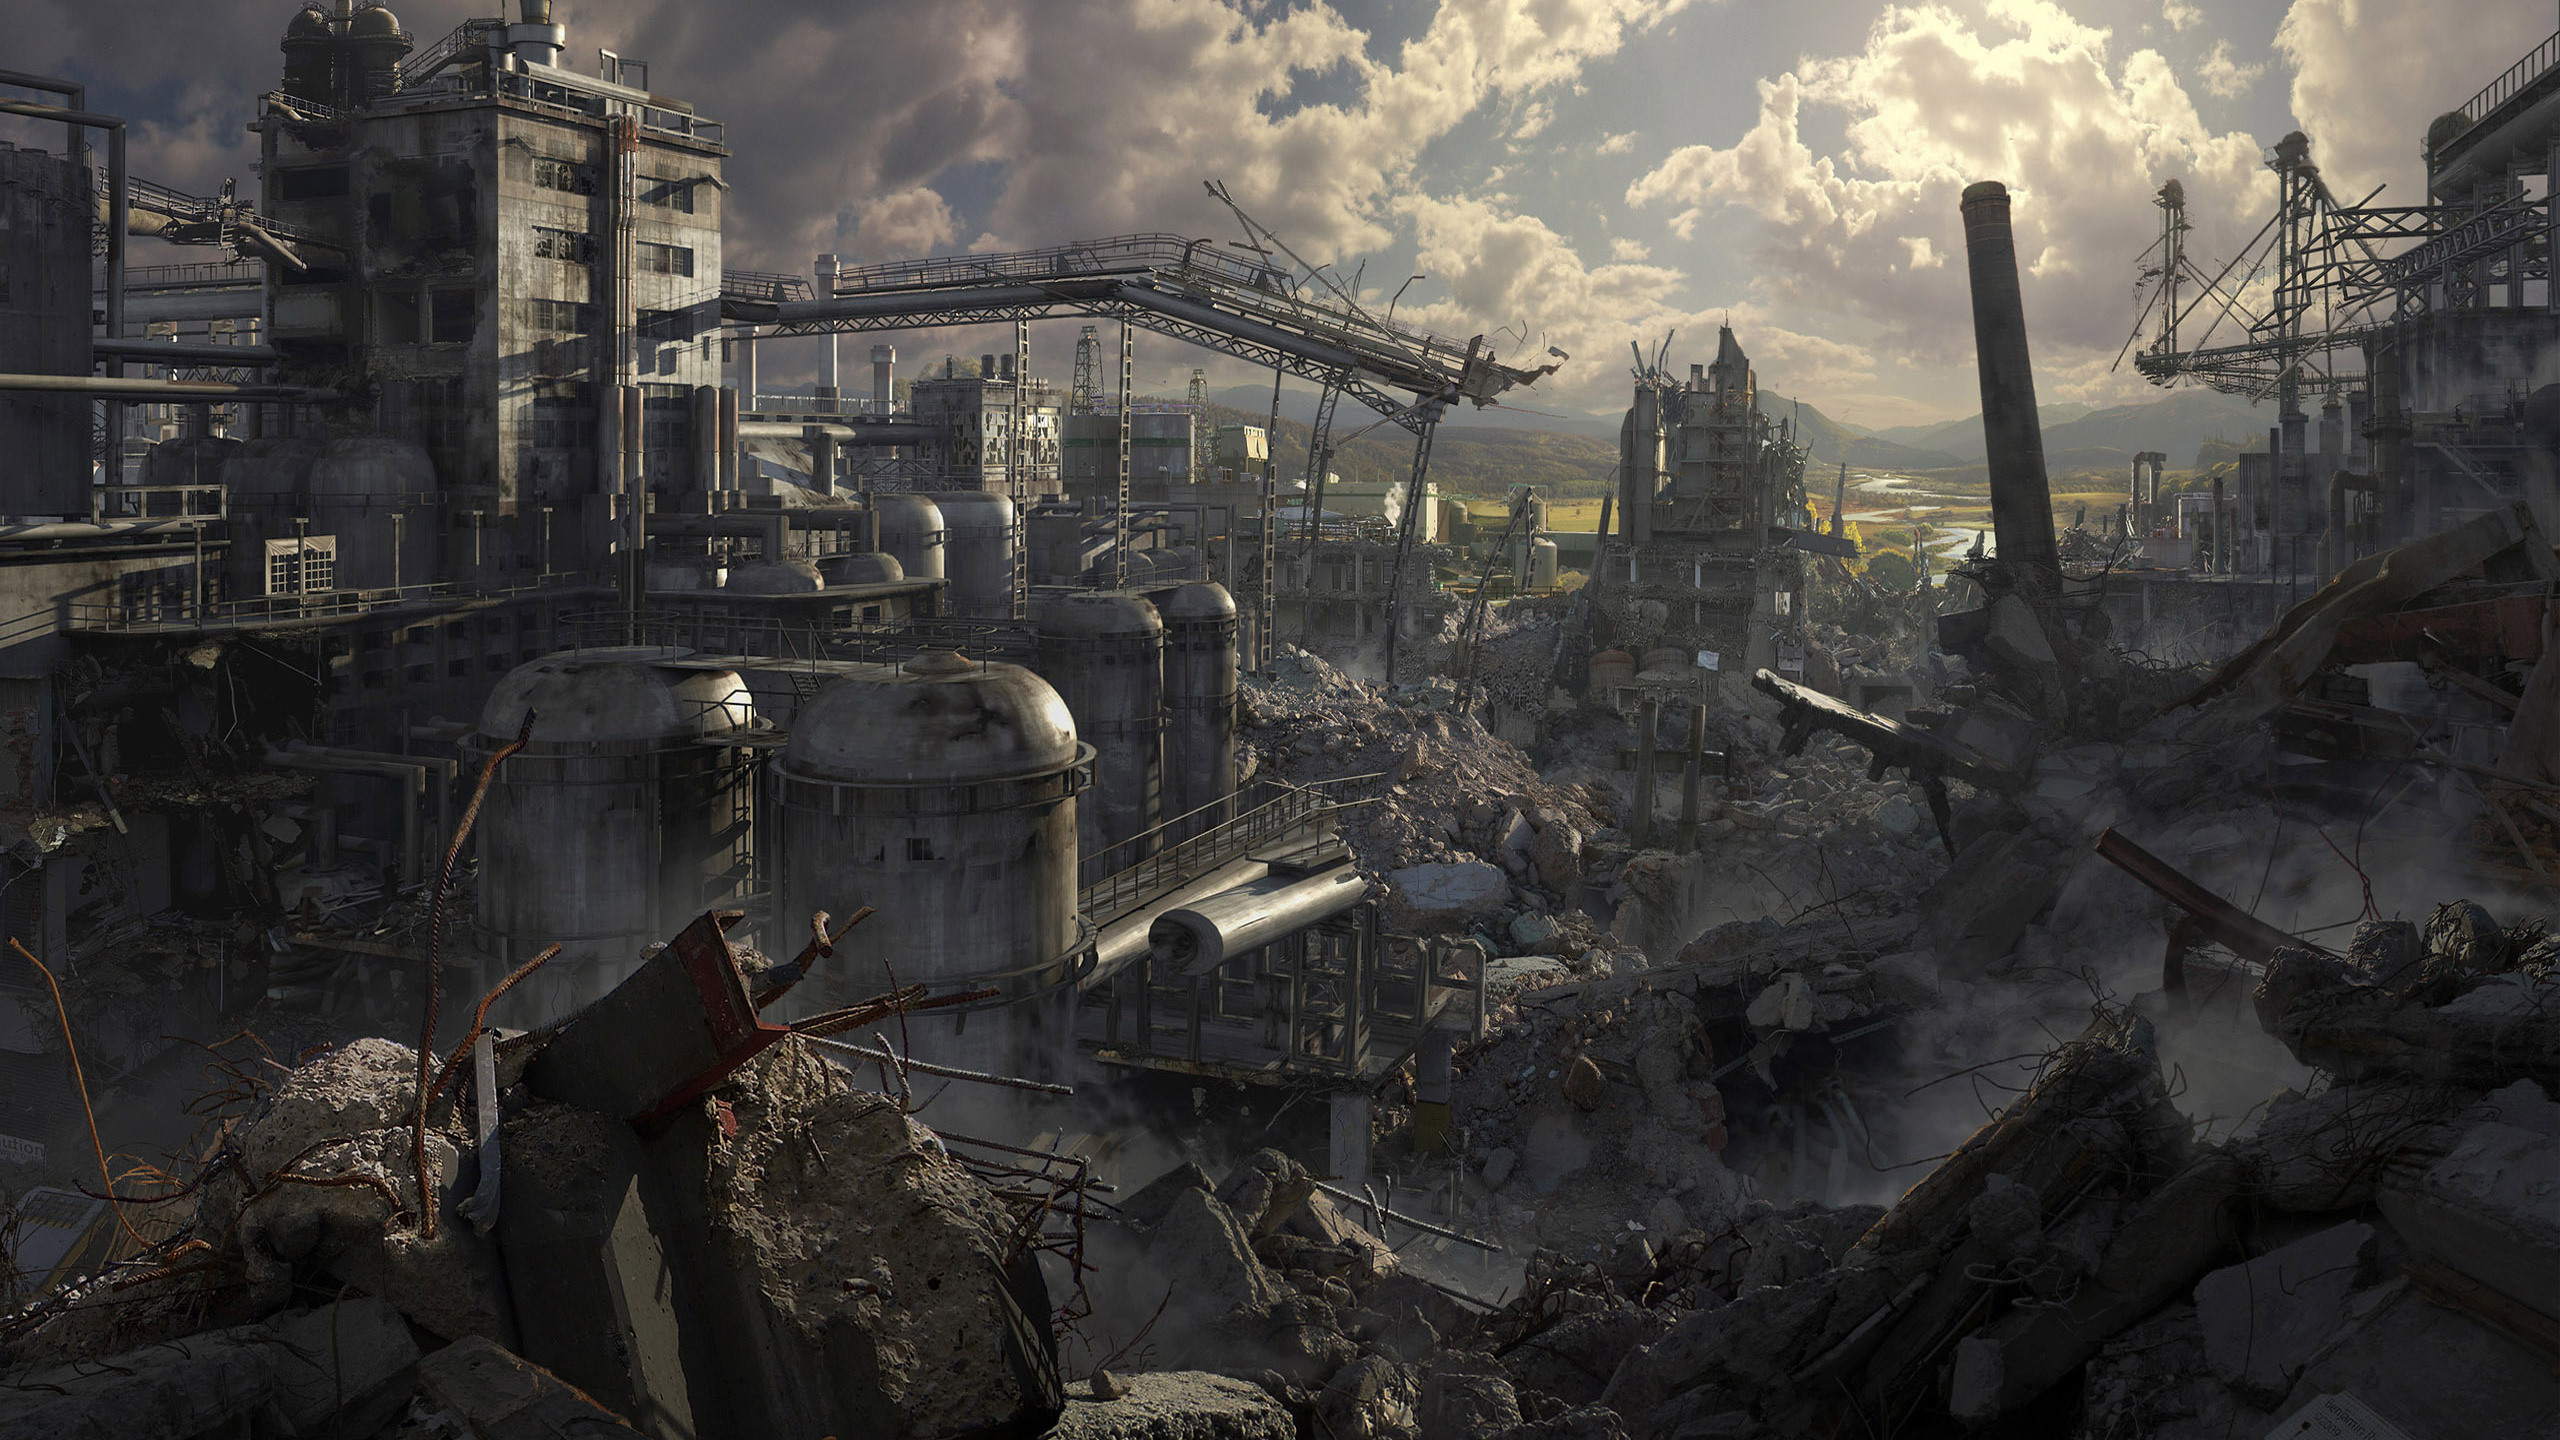 ruins post-apocalyptic artwork